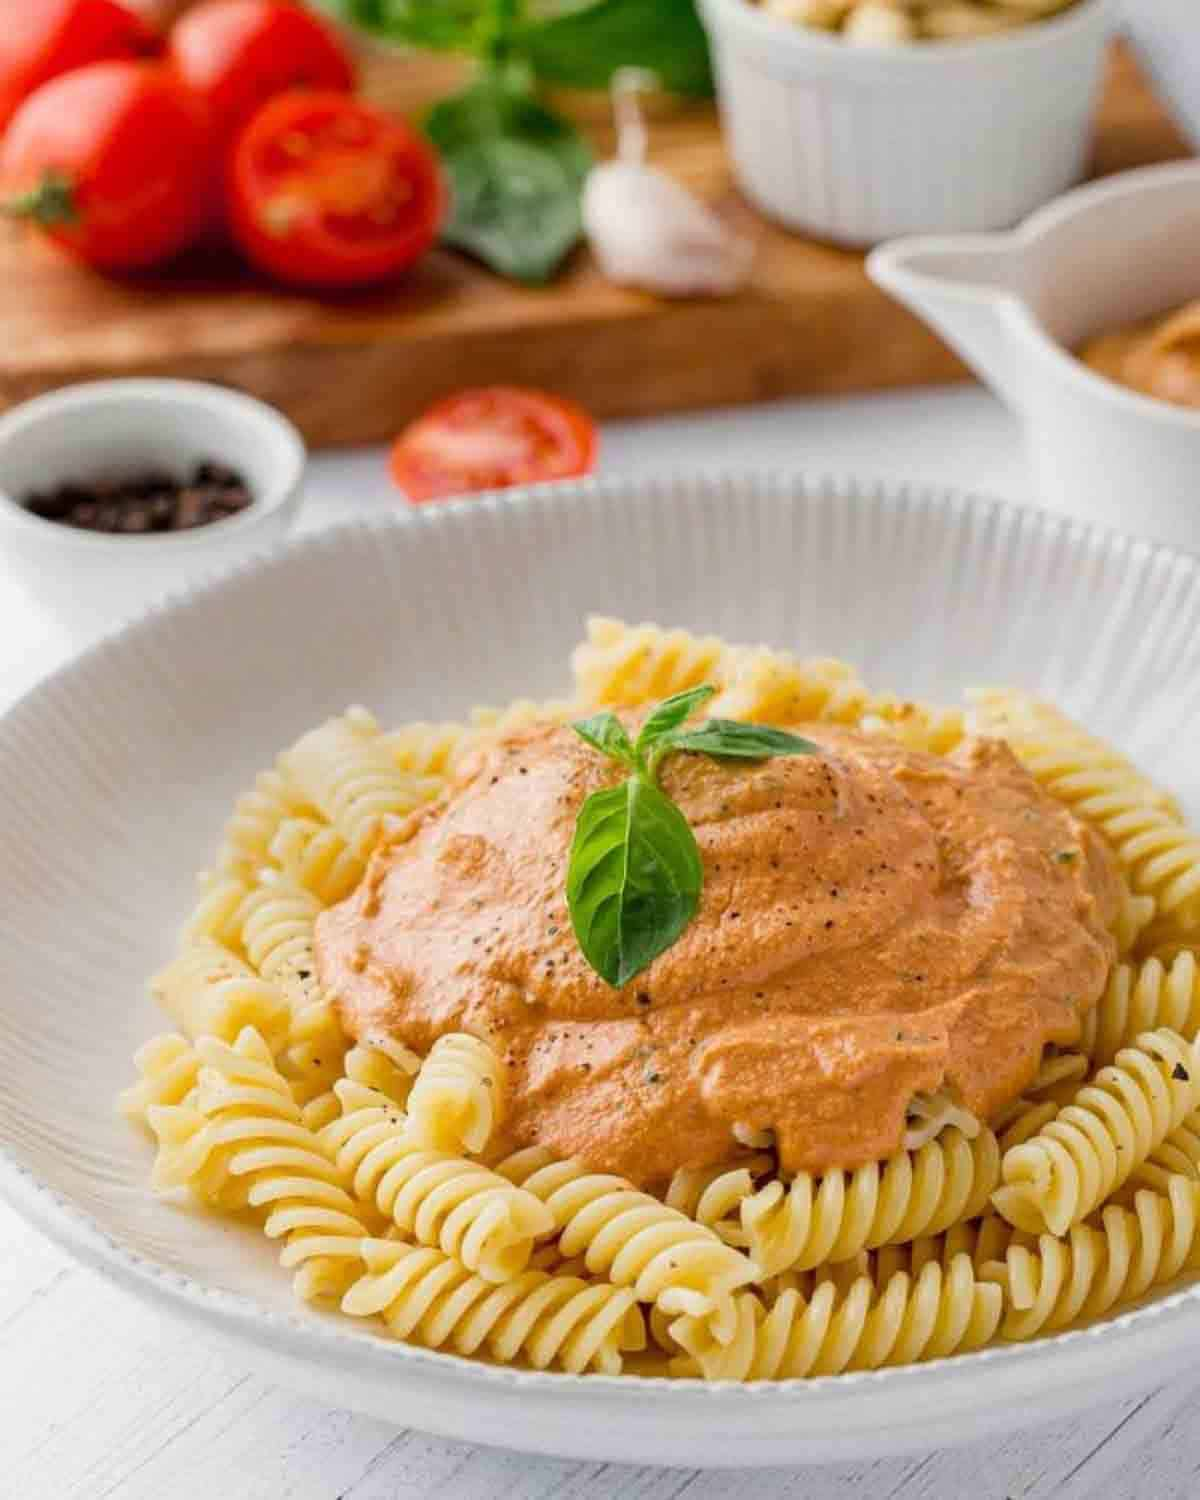 Pasta topped with tomato cream sauce. There is a chopping board with fresh produce in the background.